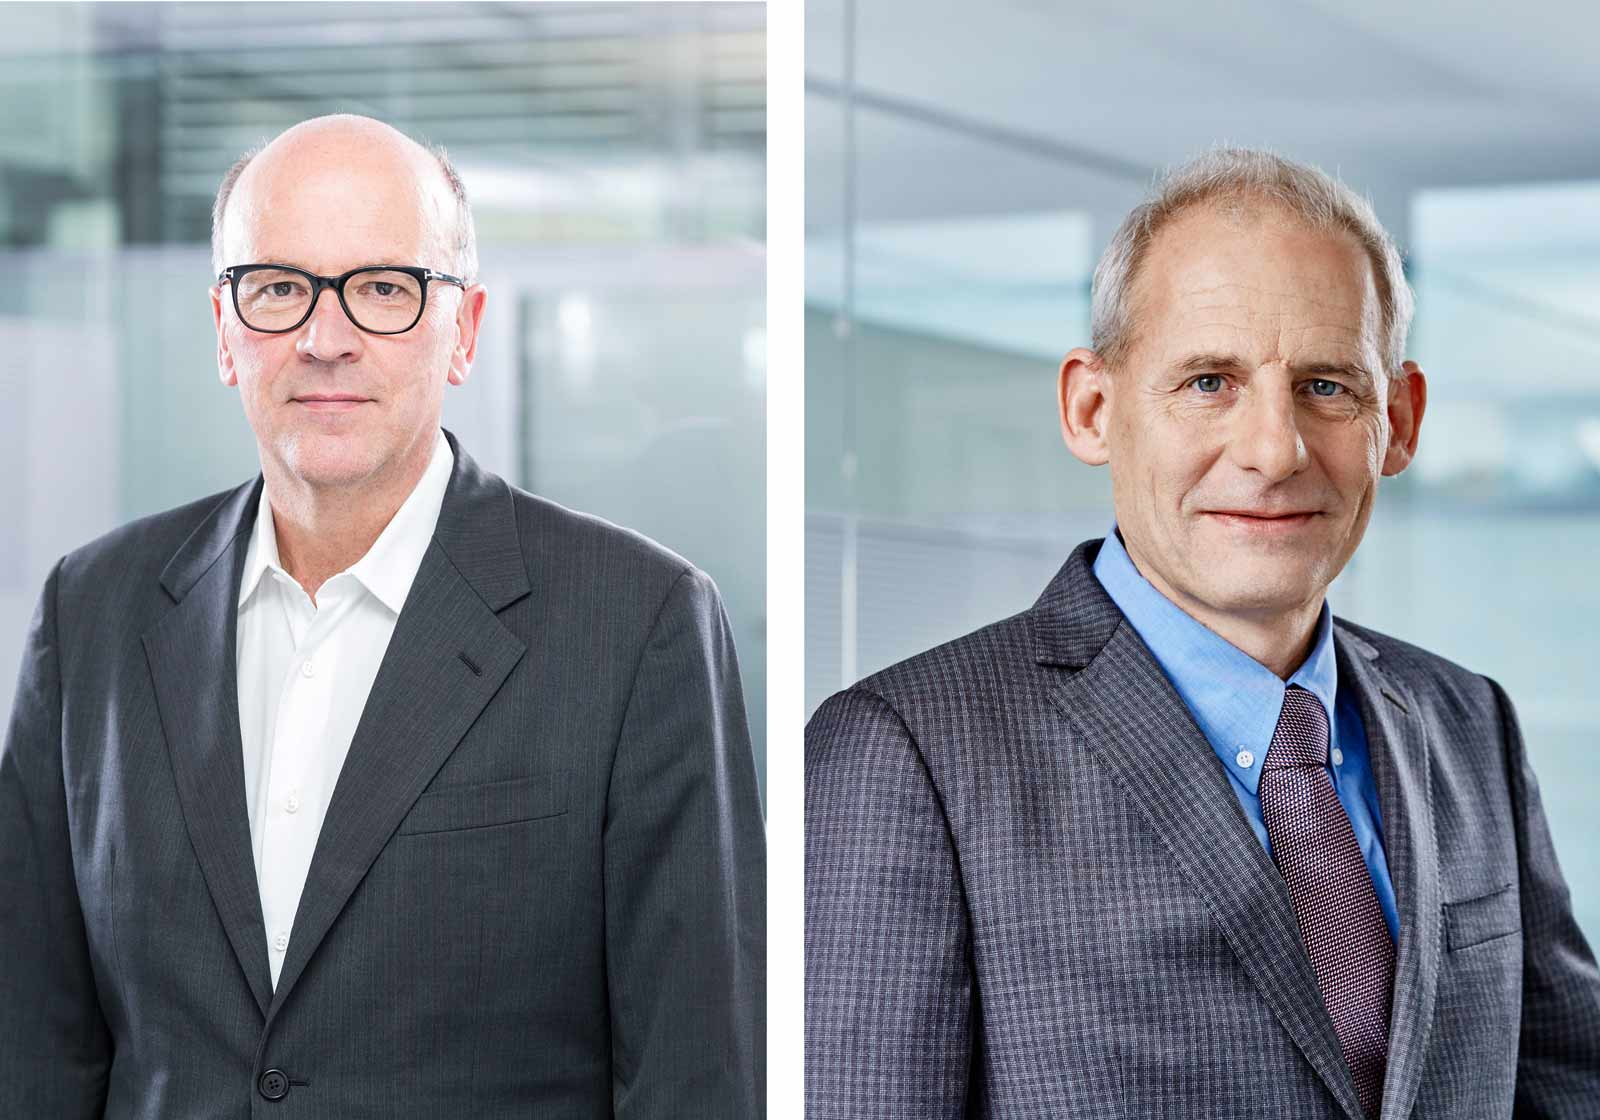 The architect Elmar Rottkamp (r.) will run the new ATP studios on Kurfürstendamm together with the building services specialist and ATP board member Thomas Herter (l.).  Photo: ATP/Becker